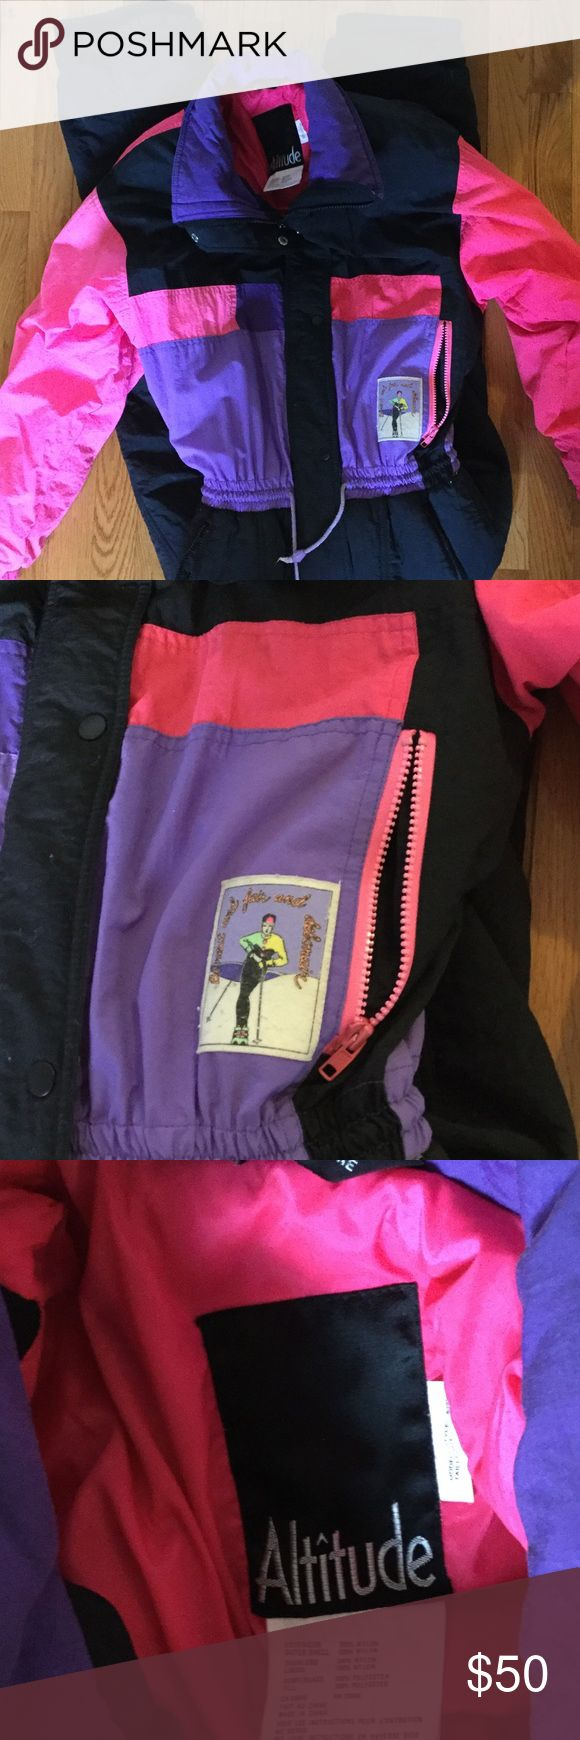 """Vintage 80's ski suit Great condition, no tears or stains. I'm about 5'10"""" and it fits me perfectly Other"""